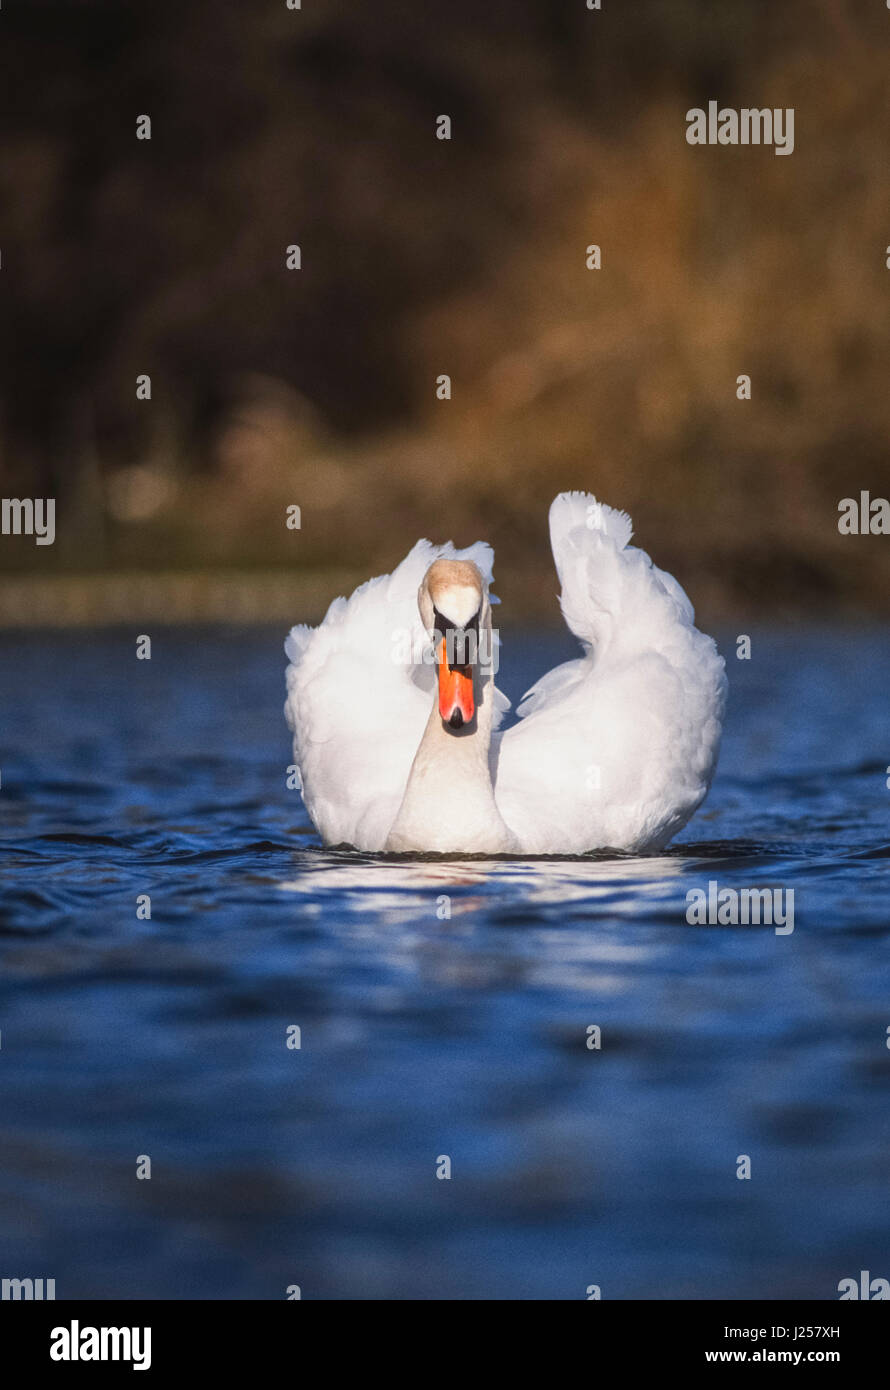 male Mute swan, (Cygnus olor), displaying plumage during courtship phase, Regents Park, London, United kingdom - Stock Image